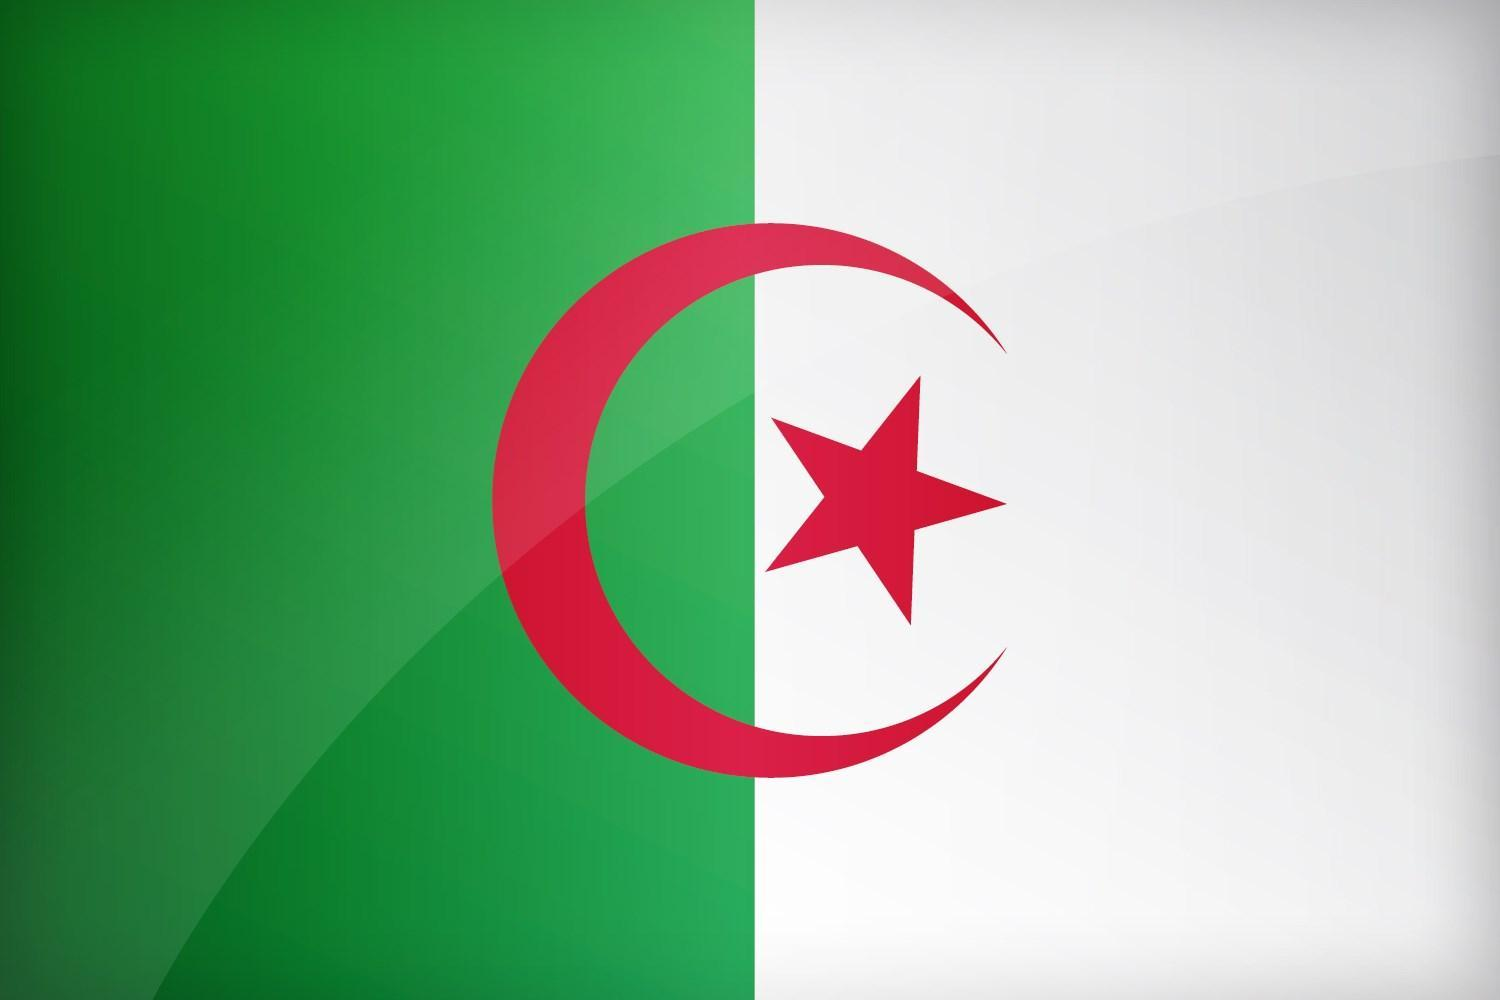 Algeria Flag Wallpapers for Android   APK Download 1500x1000